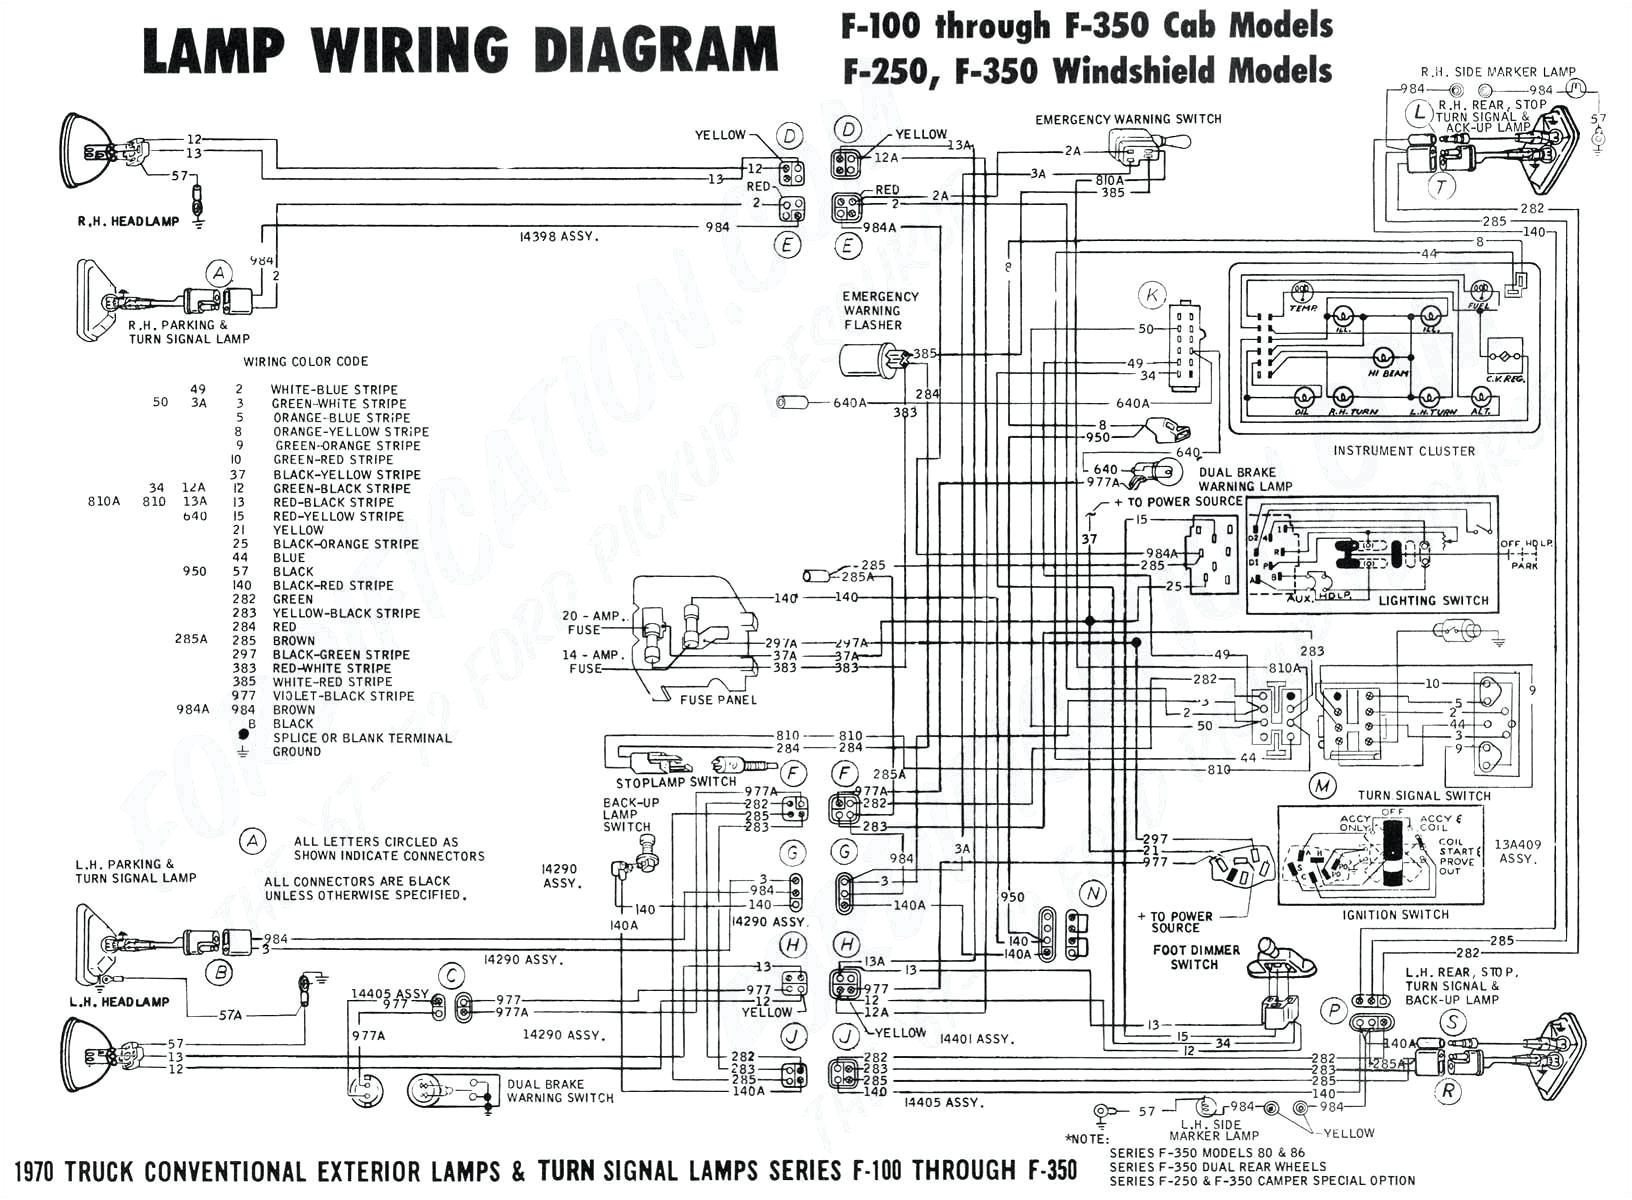 Ron Francis Wiring Diagrams ford 5 8 Efi Wiring Harness Wiring Diagram Show